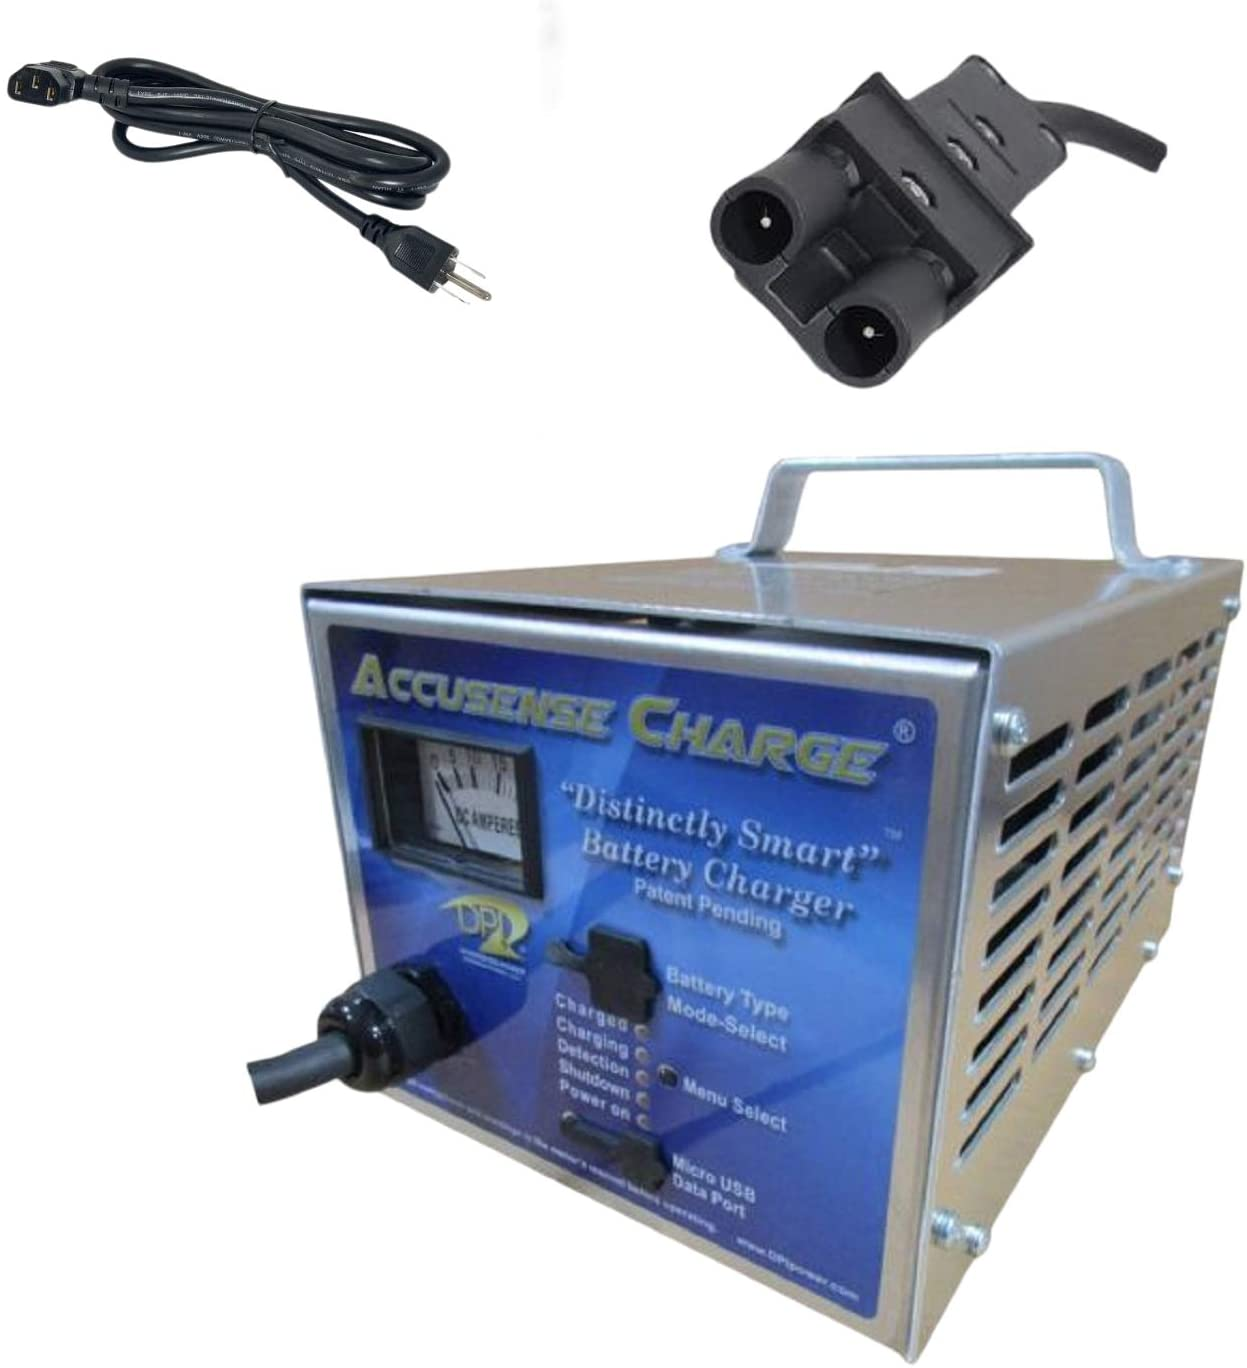 Amazon.com : 48volt 17amp Golf Cart Battery Charger for Yamaha : Golf Cart  Accessories : Sports & Outdoors | Dpi 48v Charger Wiring Diagram |  | Amazon.com